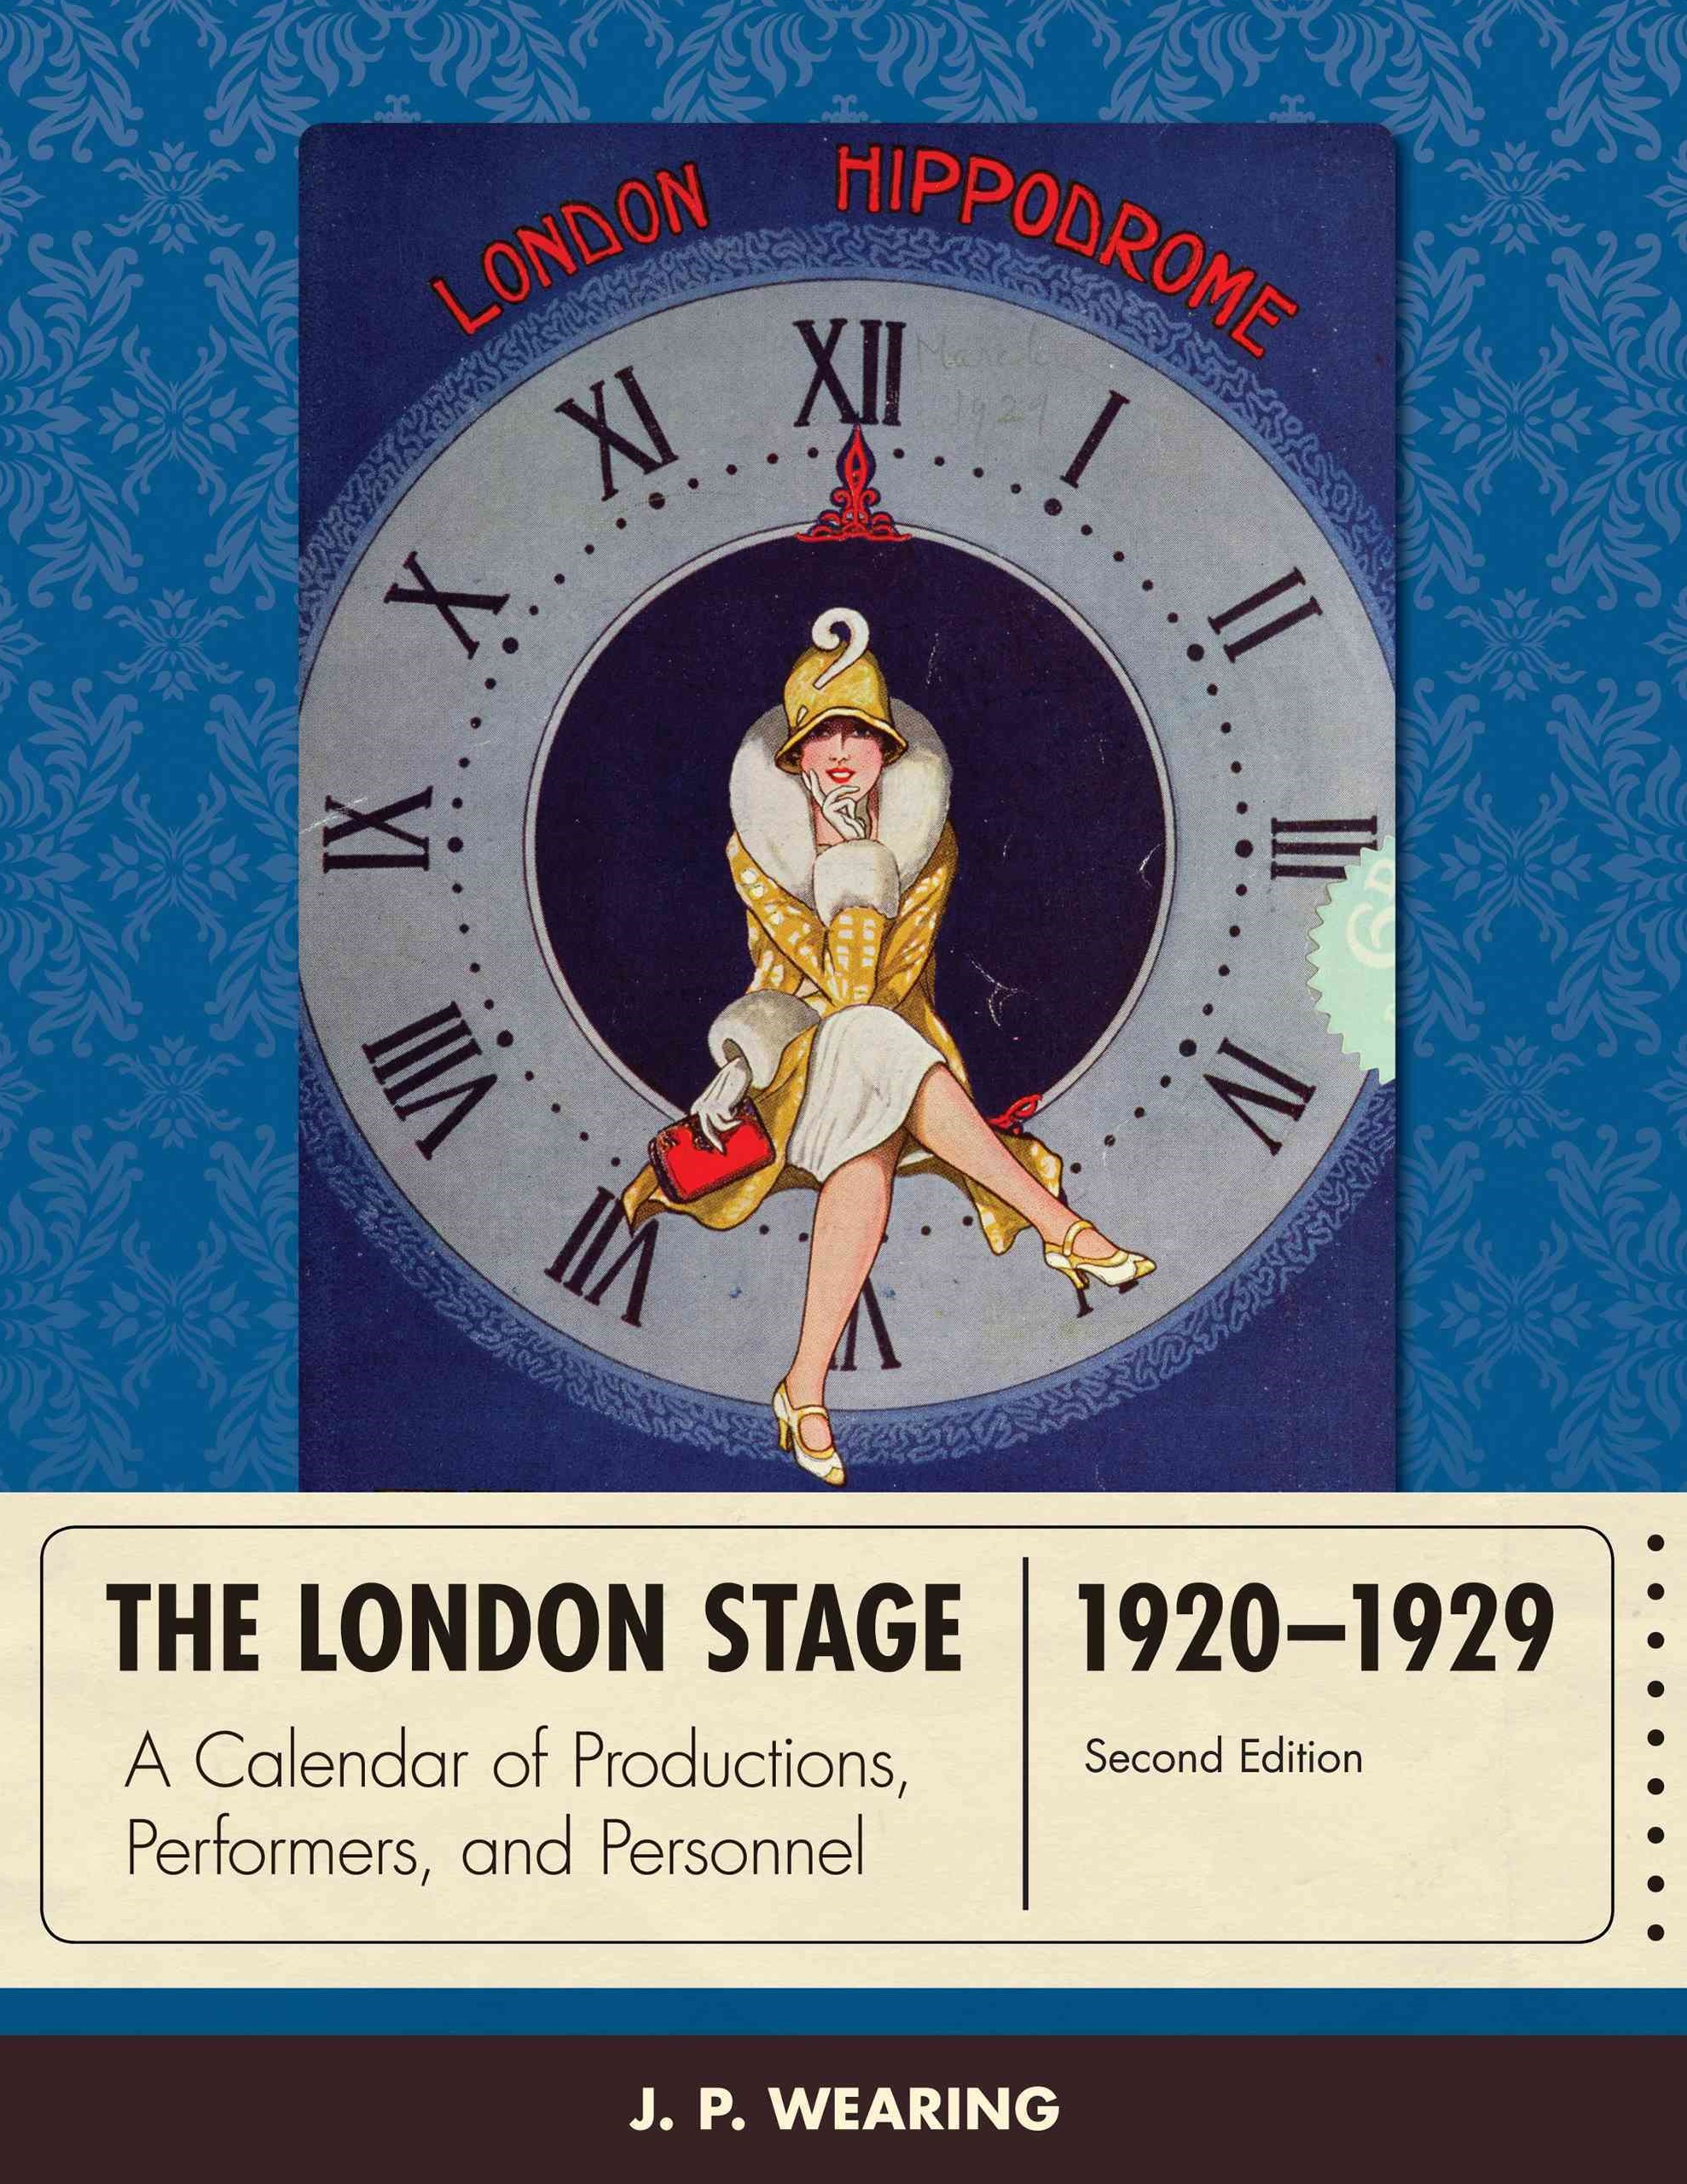 London Stage, 1920-1929